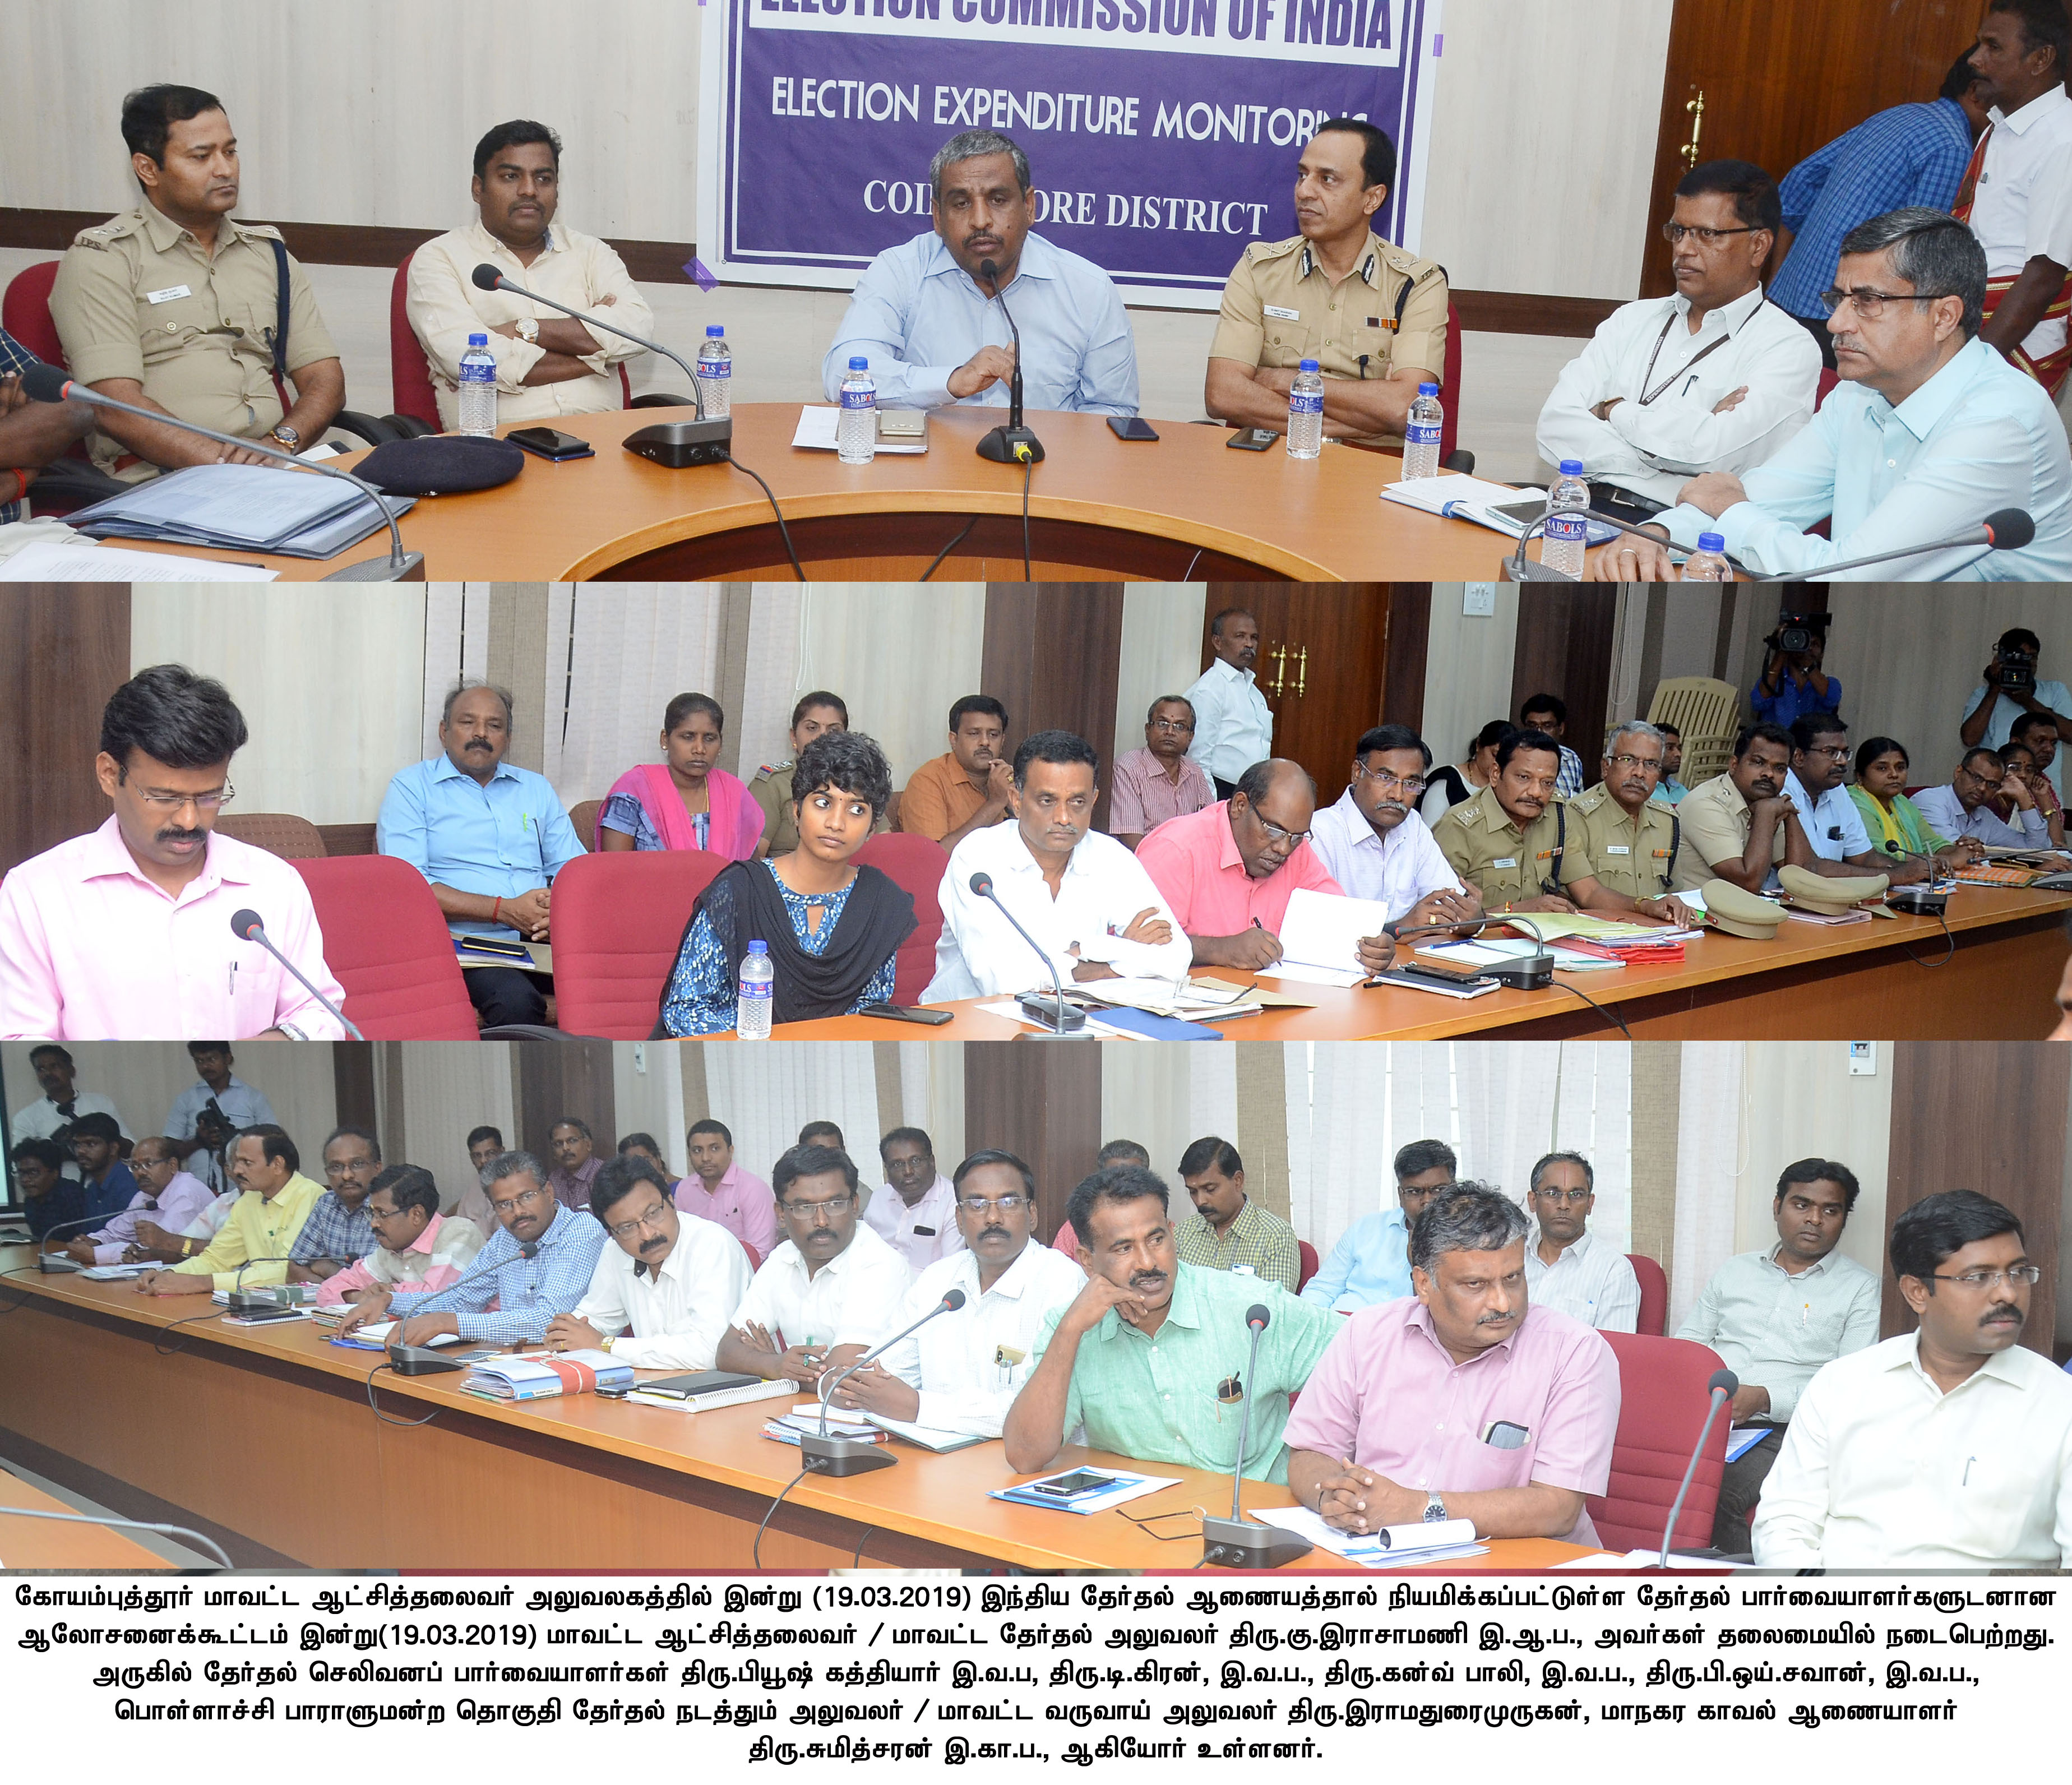 Parliament Election Expenditure Observers meeting held on 19/03/2019 with the District Election Officer cum District Collector Thiru. K.Rajamani I.A.S.at Collectorate Building.